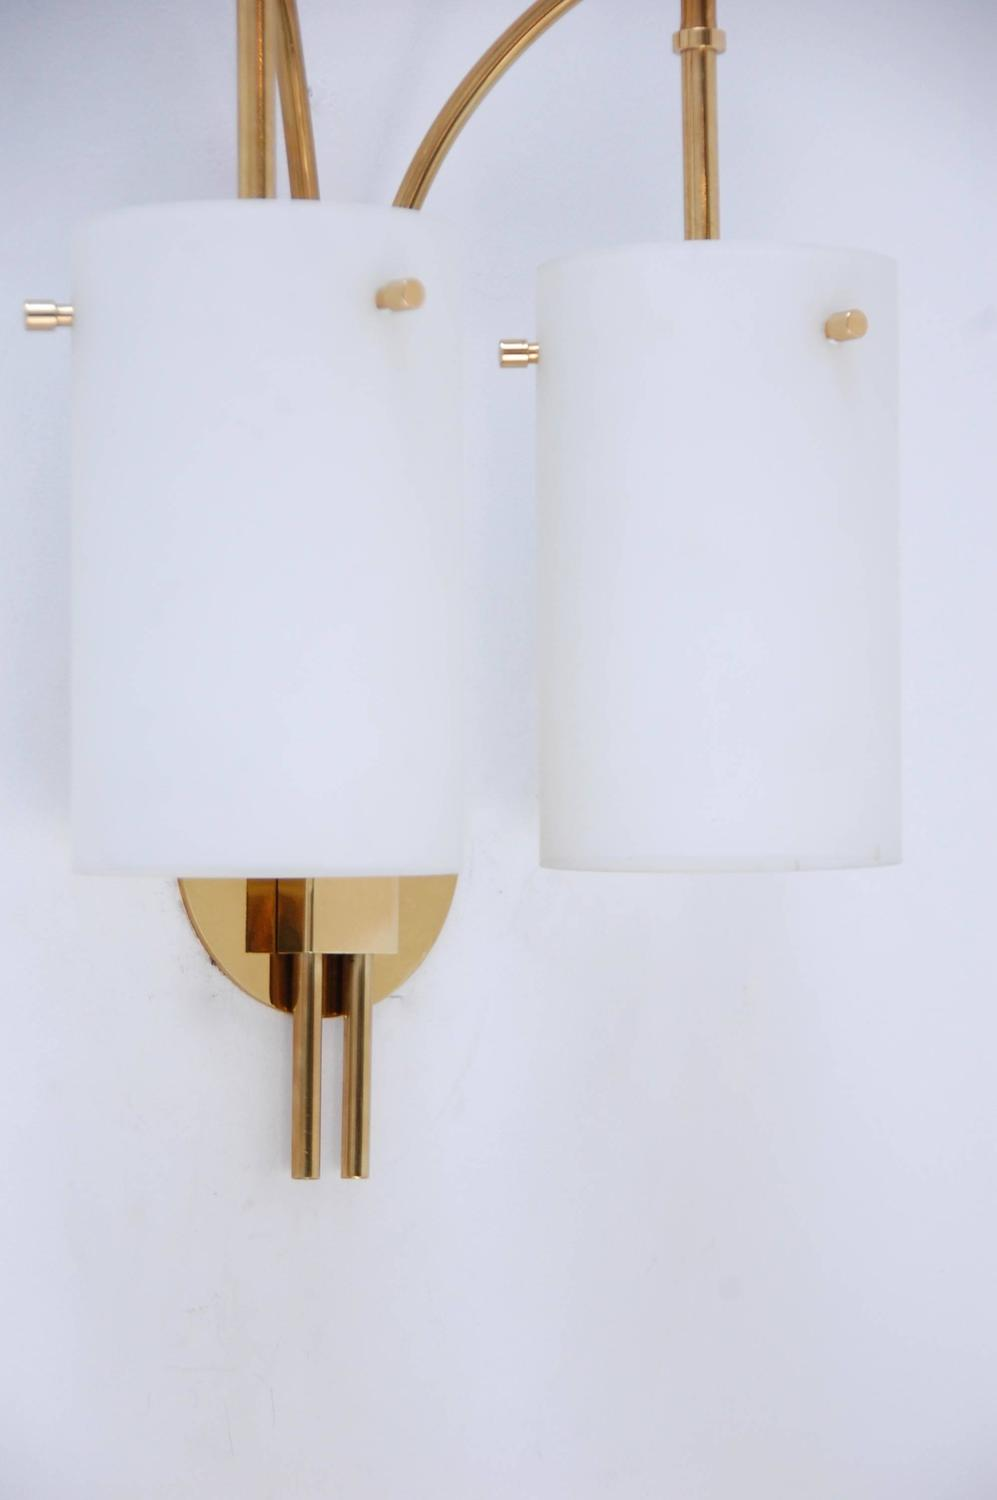 1950s Italian Double Shade Cylinder Sconce For Sale at 1stdibs